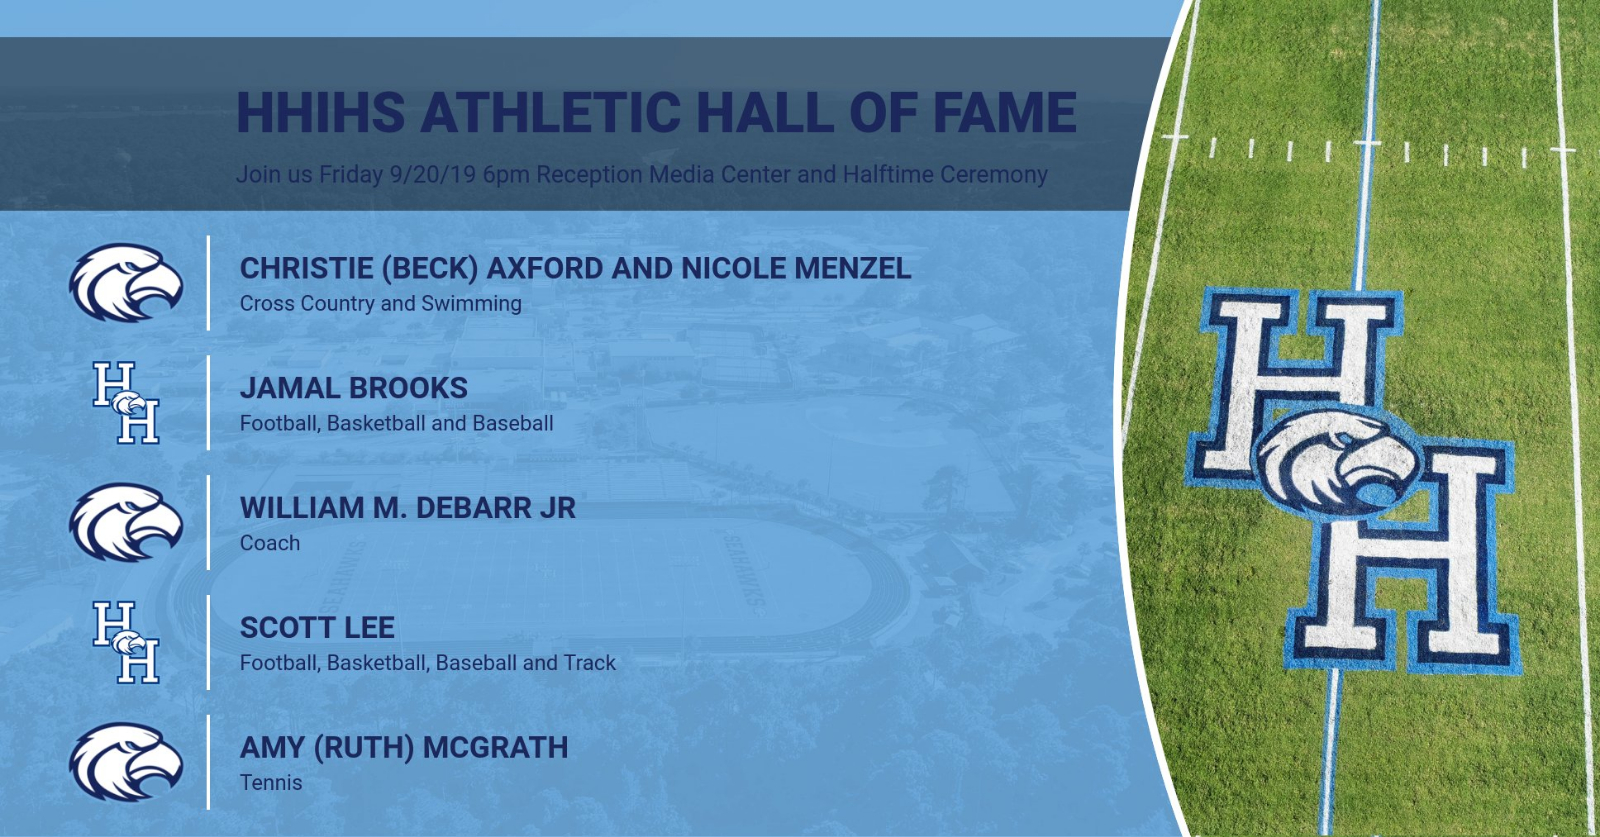 HHIHS Athletic Hall Fame Class of 2019